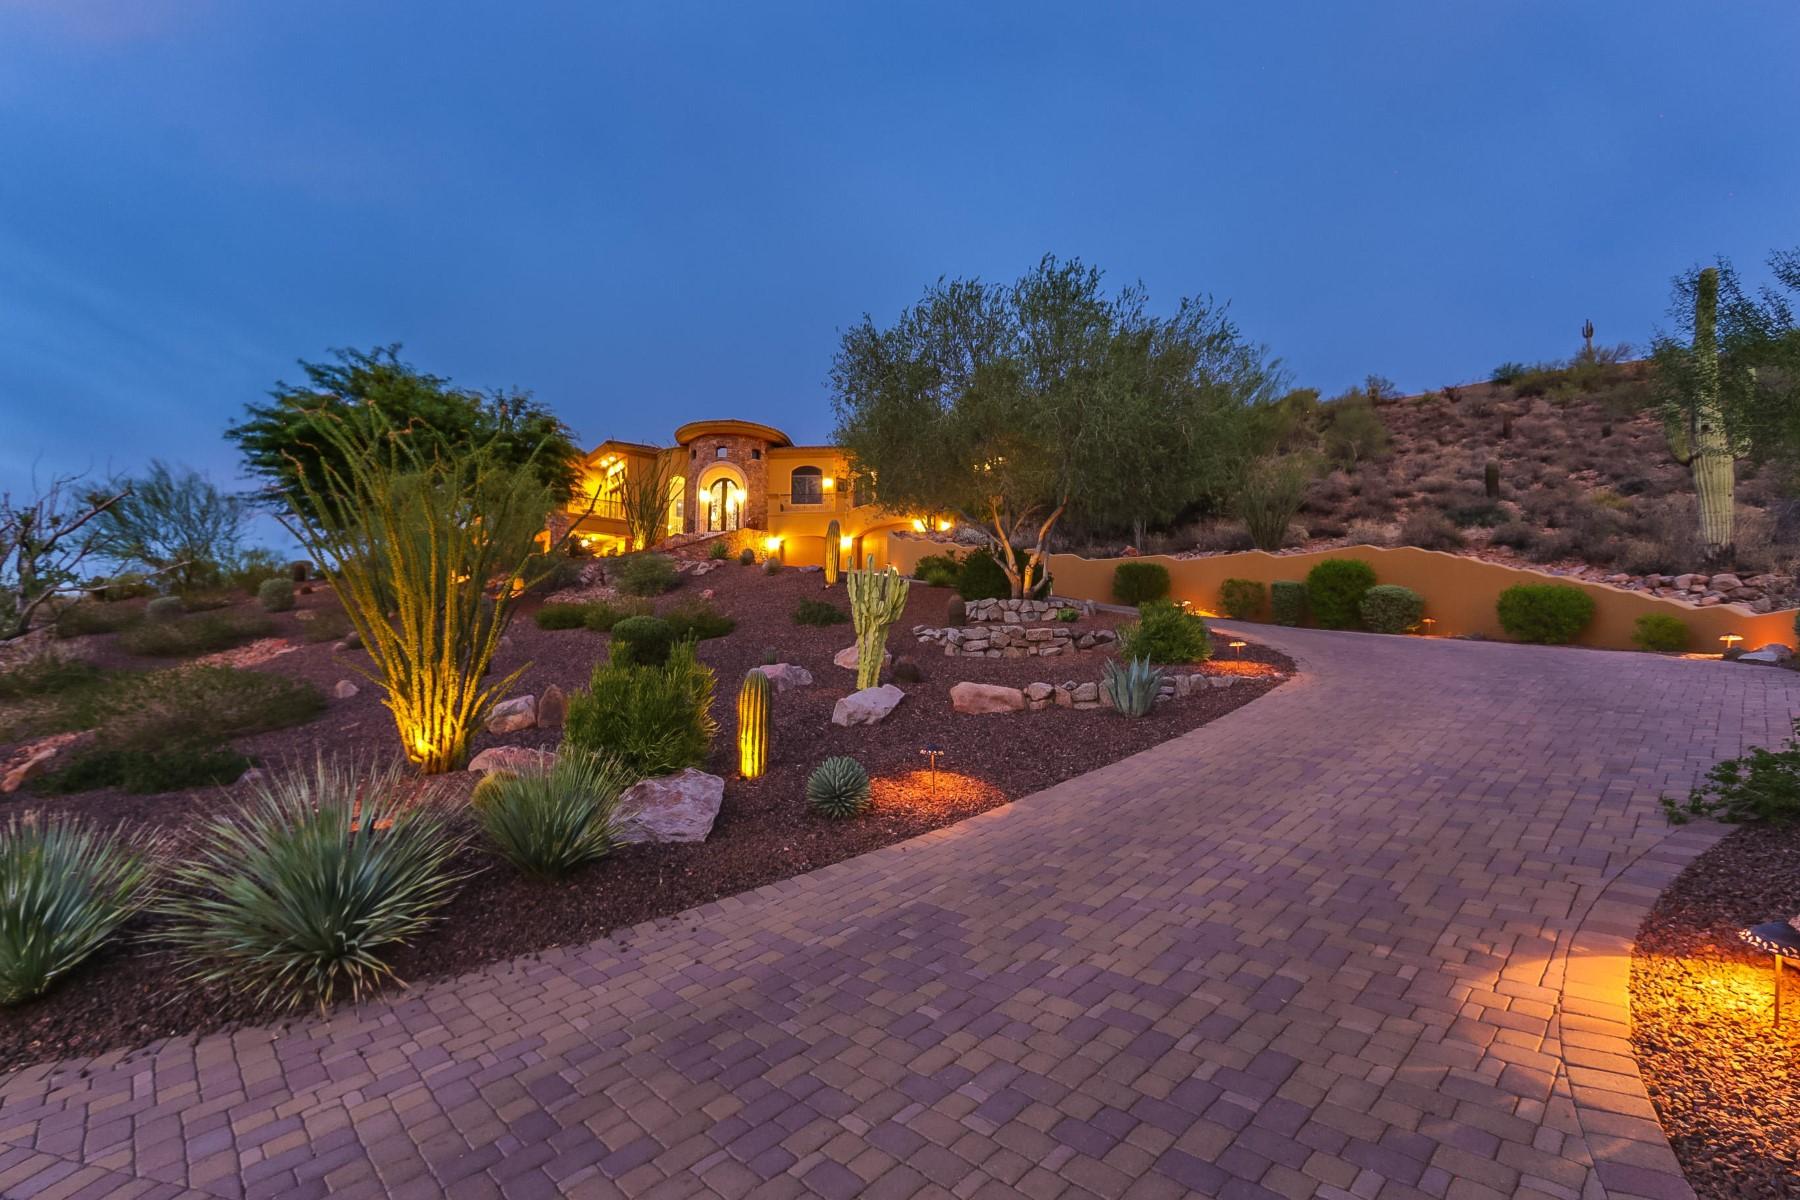 Single Family Home for Sale at One of the finest homes in FireRock Country Club 10141 N Mcdowell View Trl Fountain Hills, Arizona, 85268 United States